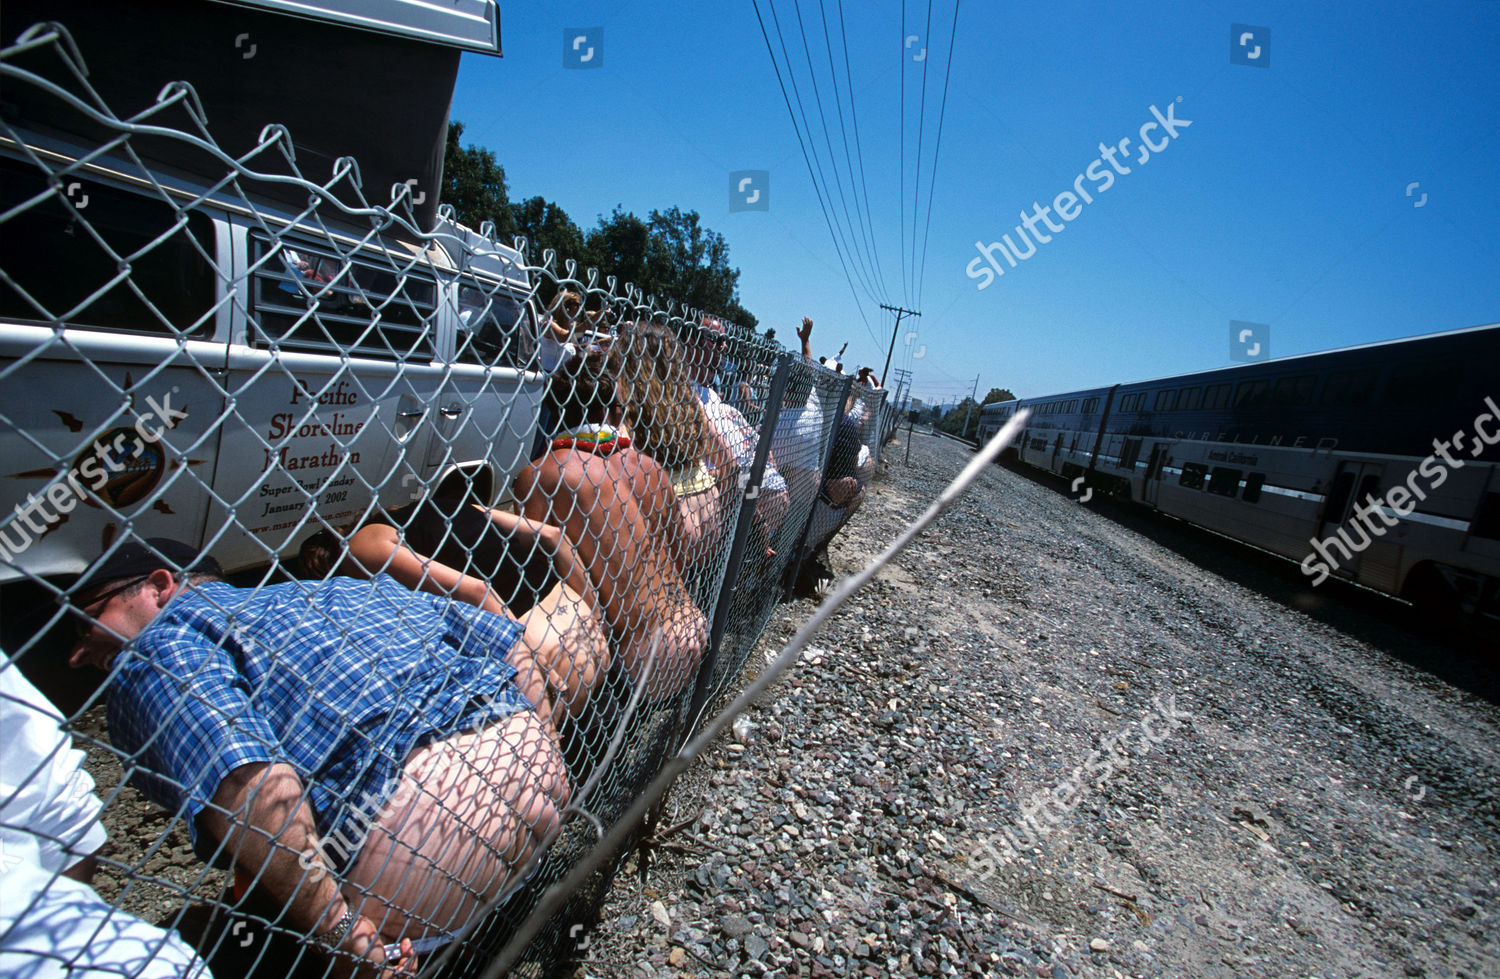 Amtrak Mooning Pictures people against fence mooning amtrak train editorial stock